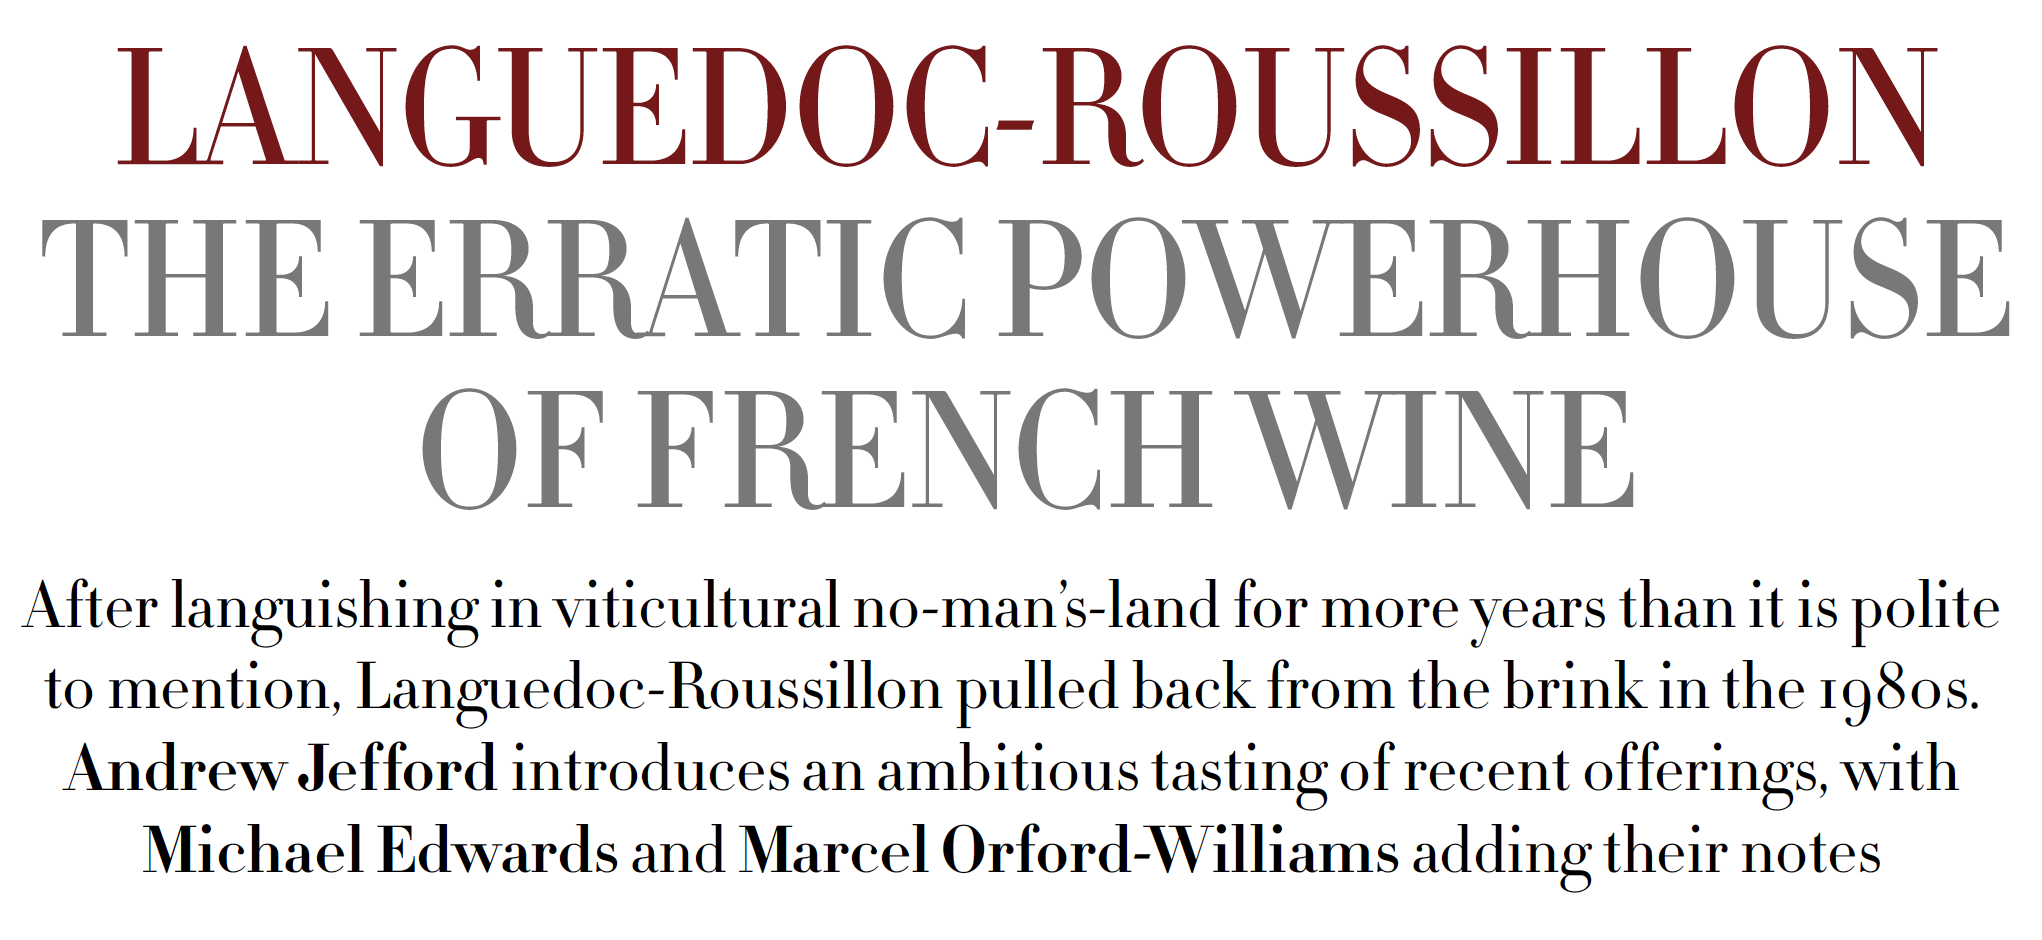 The World of Fine Wine Languedoc-Roussillon tasting with Andrew Jefford, Michael Edwards and Marcel Orford-Williams